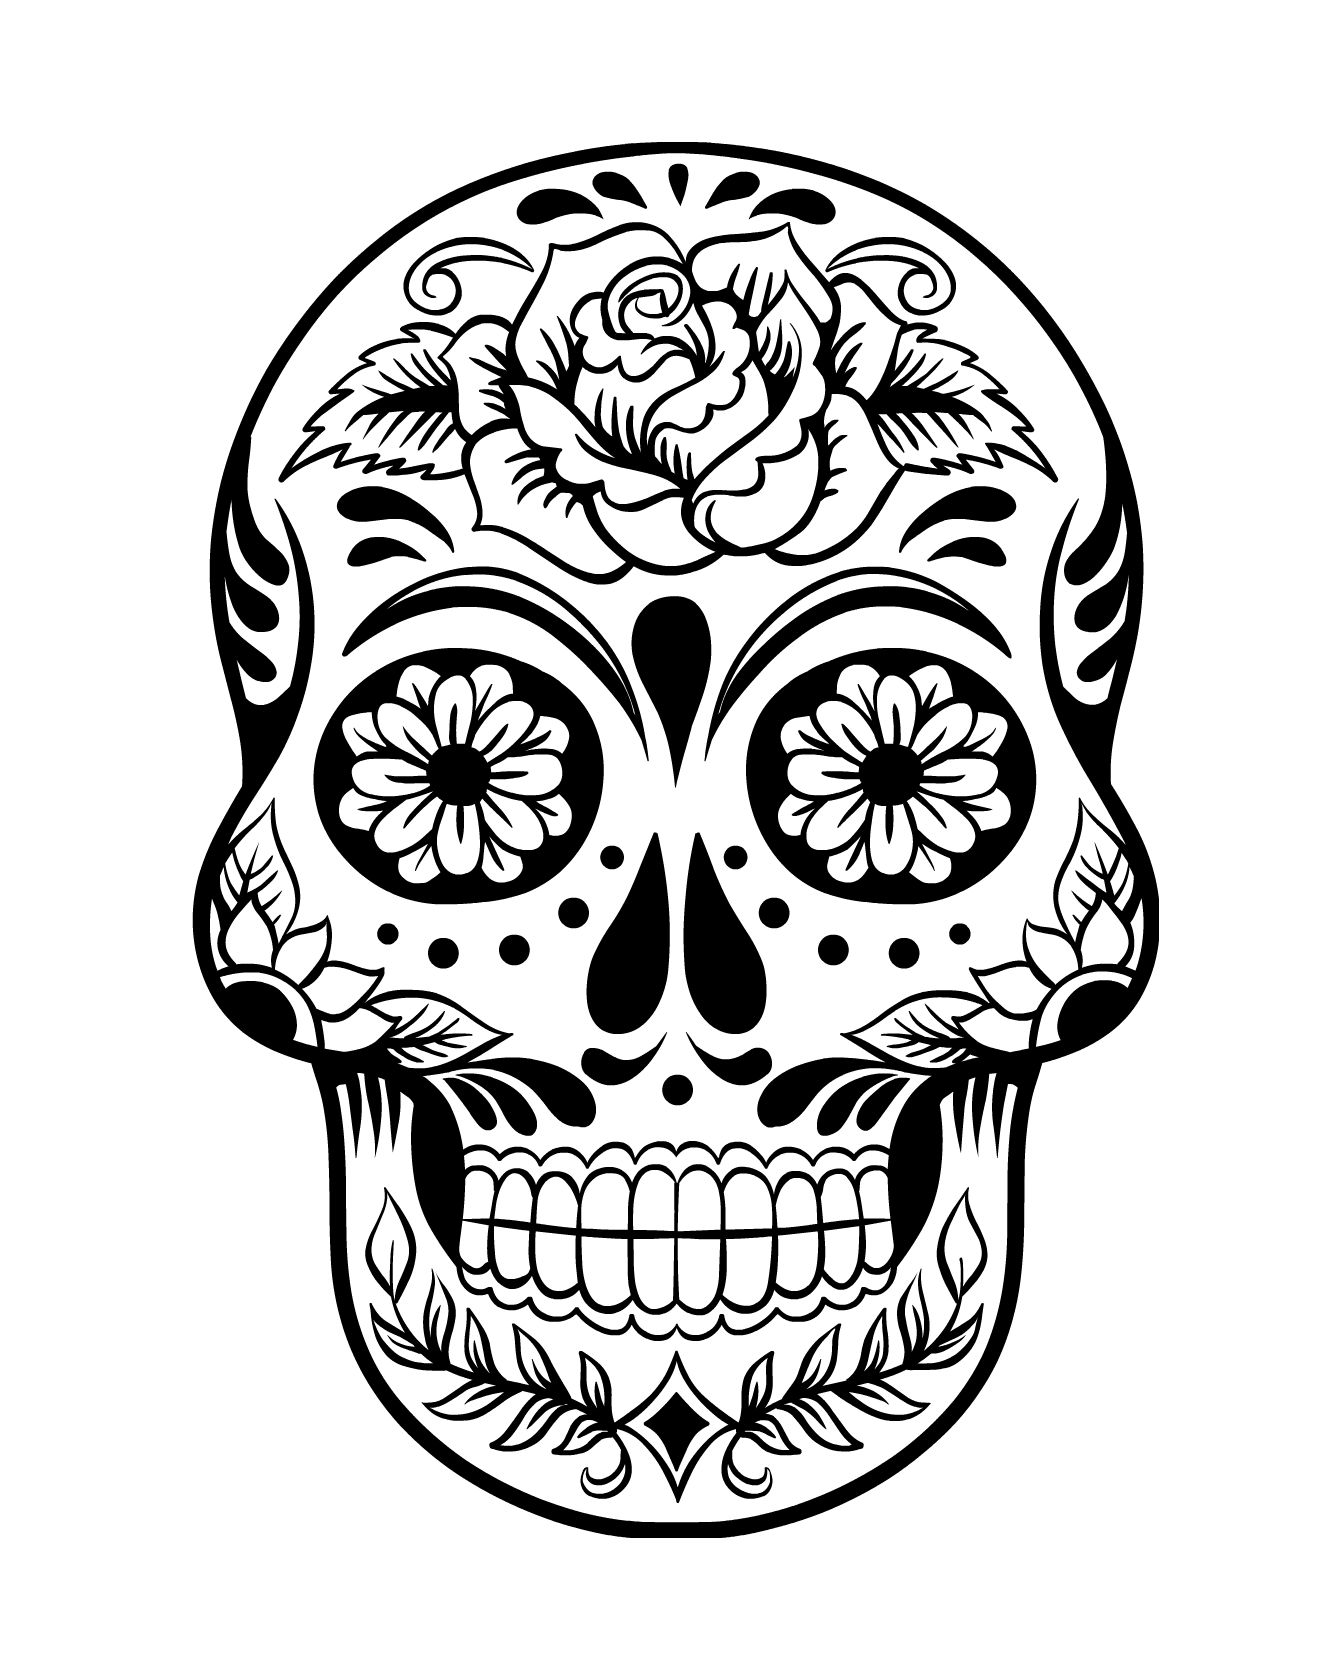 day of the dead skull coloring page free printable day of the dead coloring pages best day coloring of page skull dead the